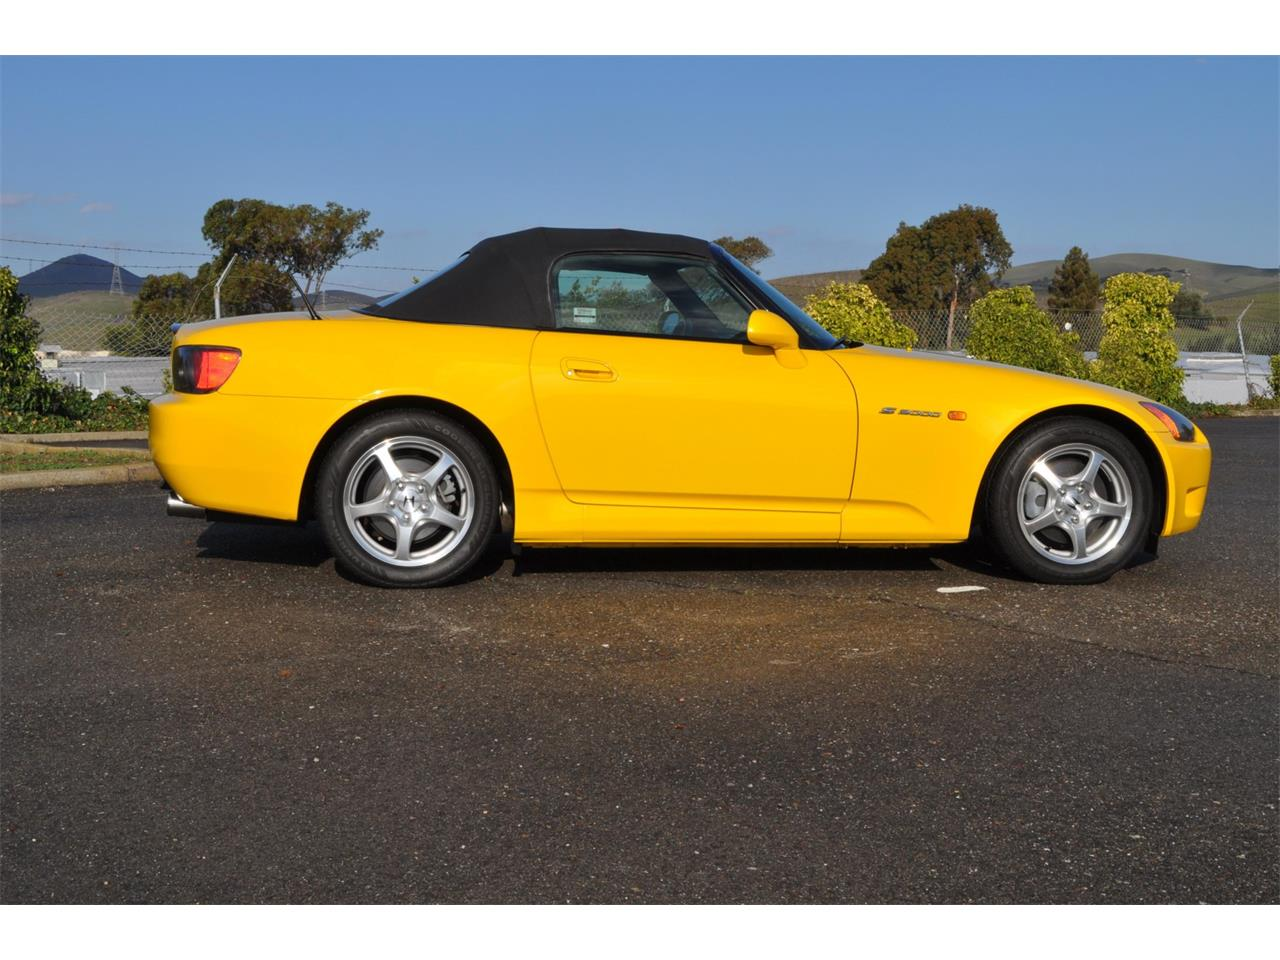 Large Picture of 2000 S2000 located in Benicia California Auction Vehicle - QP2U